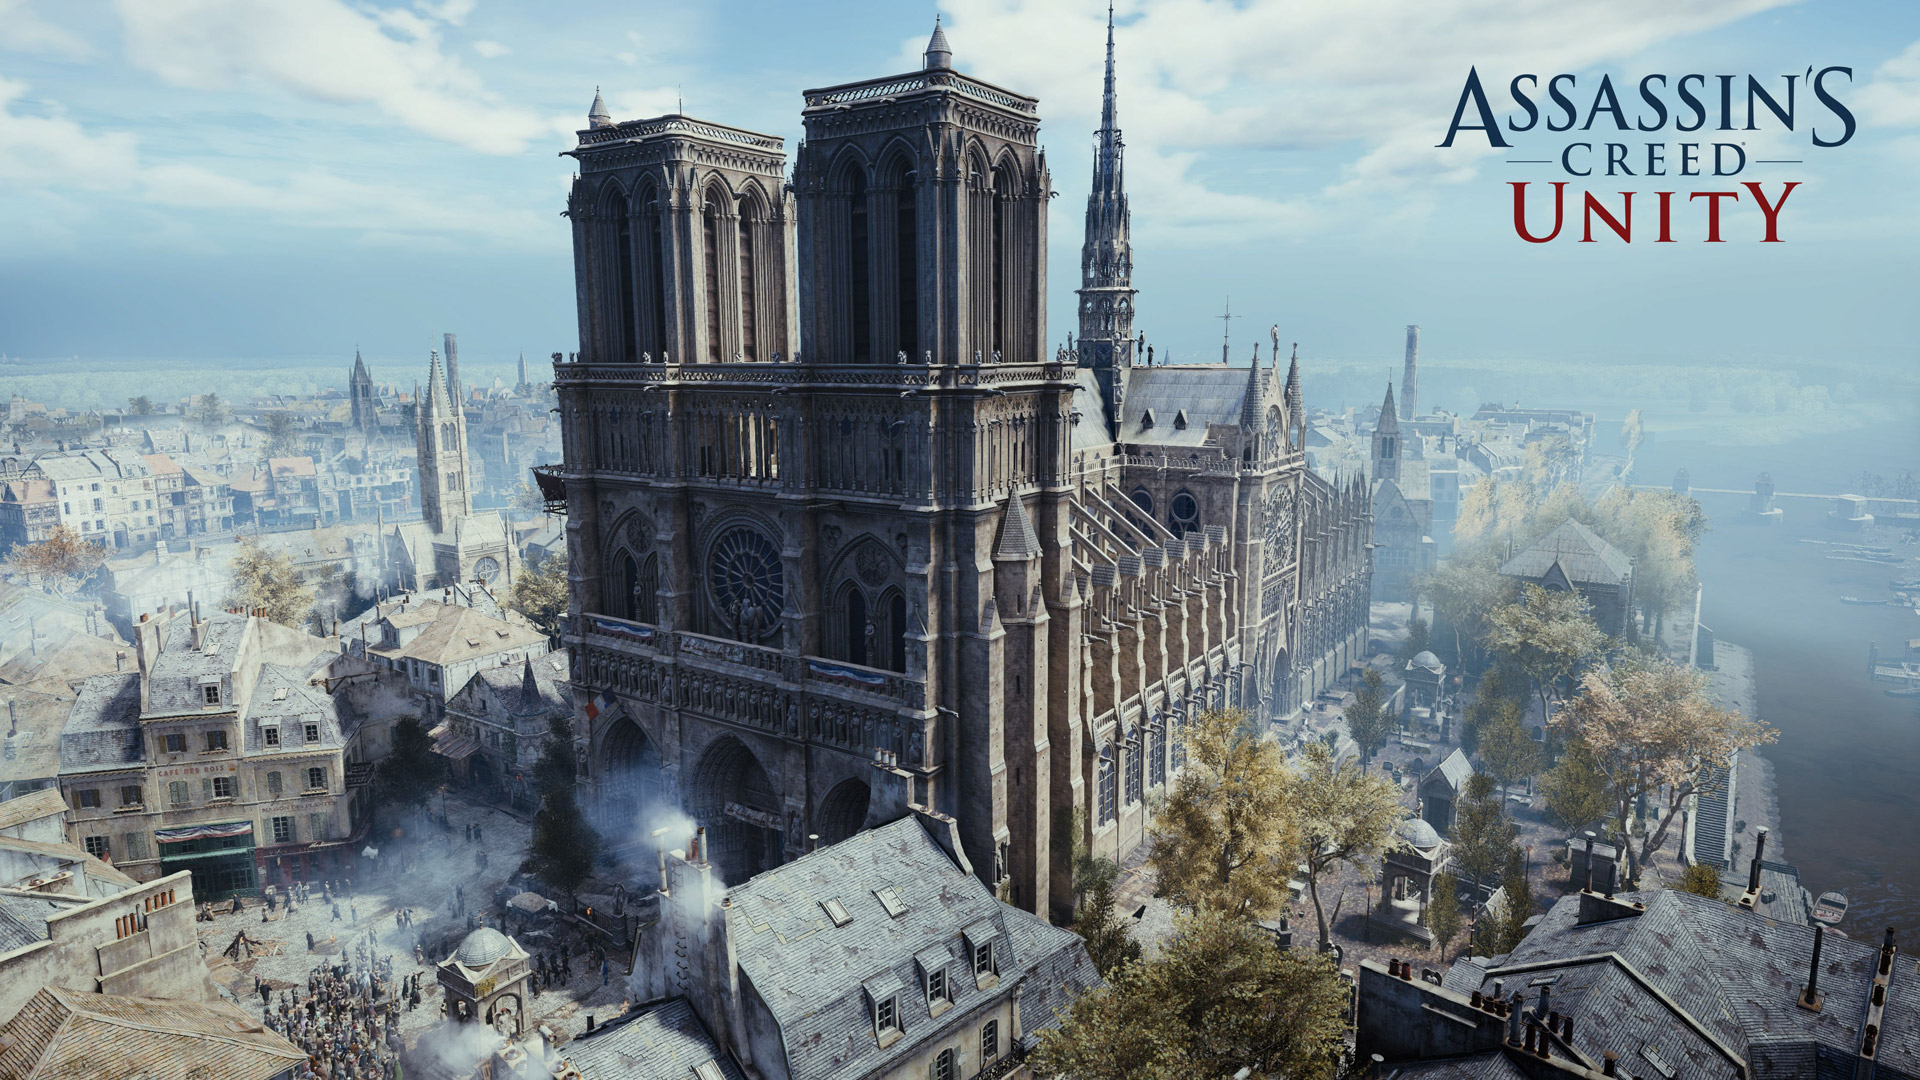 Free Assassin's Creed: Unity Wallpaper in 1920x1080